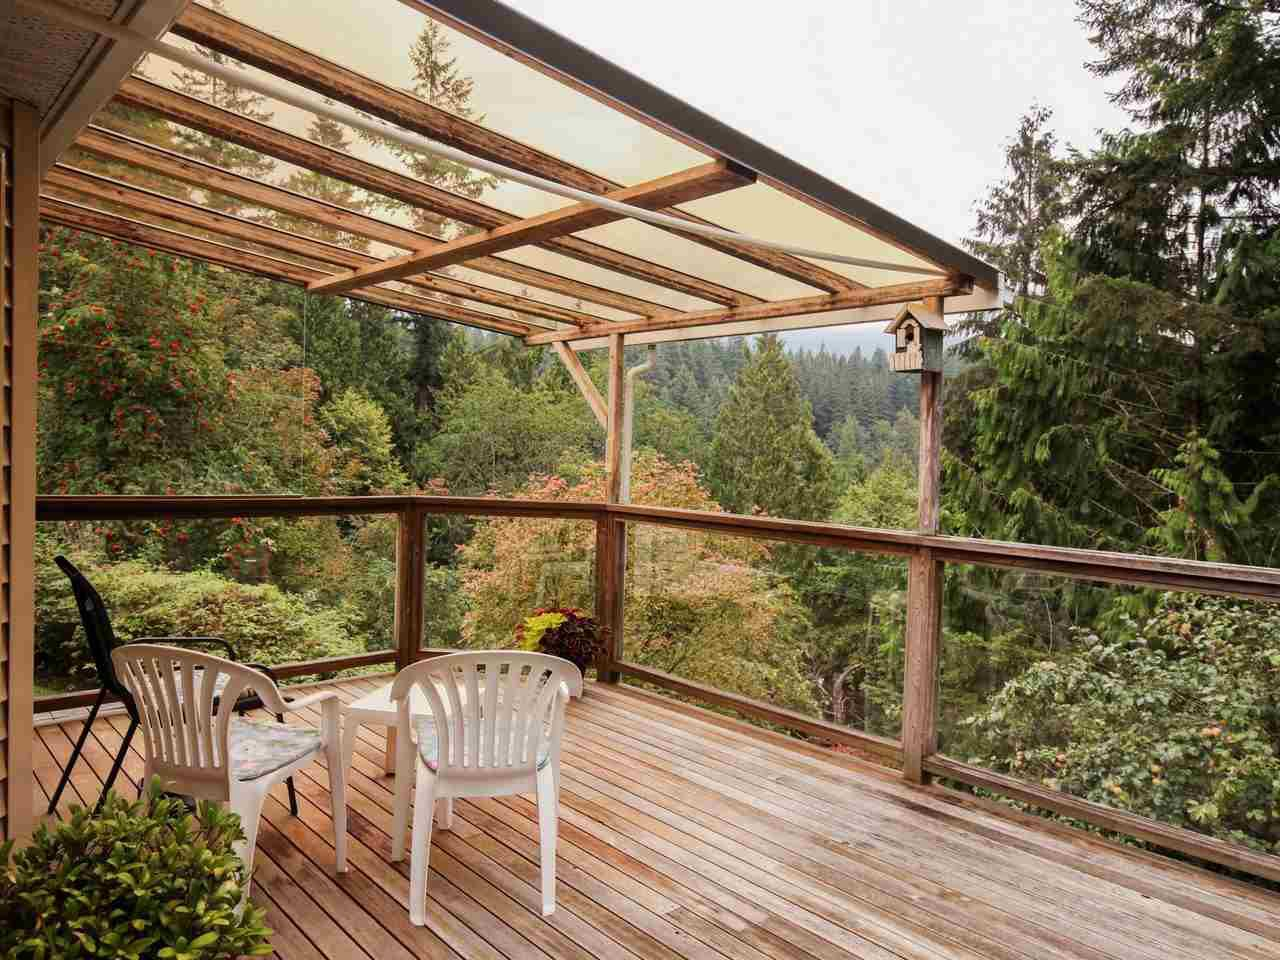 Photo 16: Photos: 4120 LYNN VALLEY ROAD in North Vancouver: Lynn Valley House for sale : MLS®# R2100168